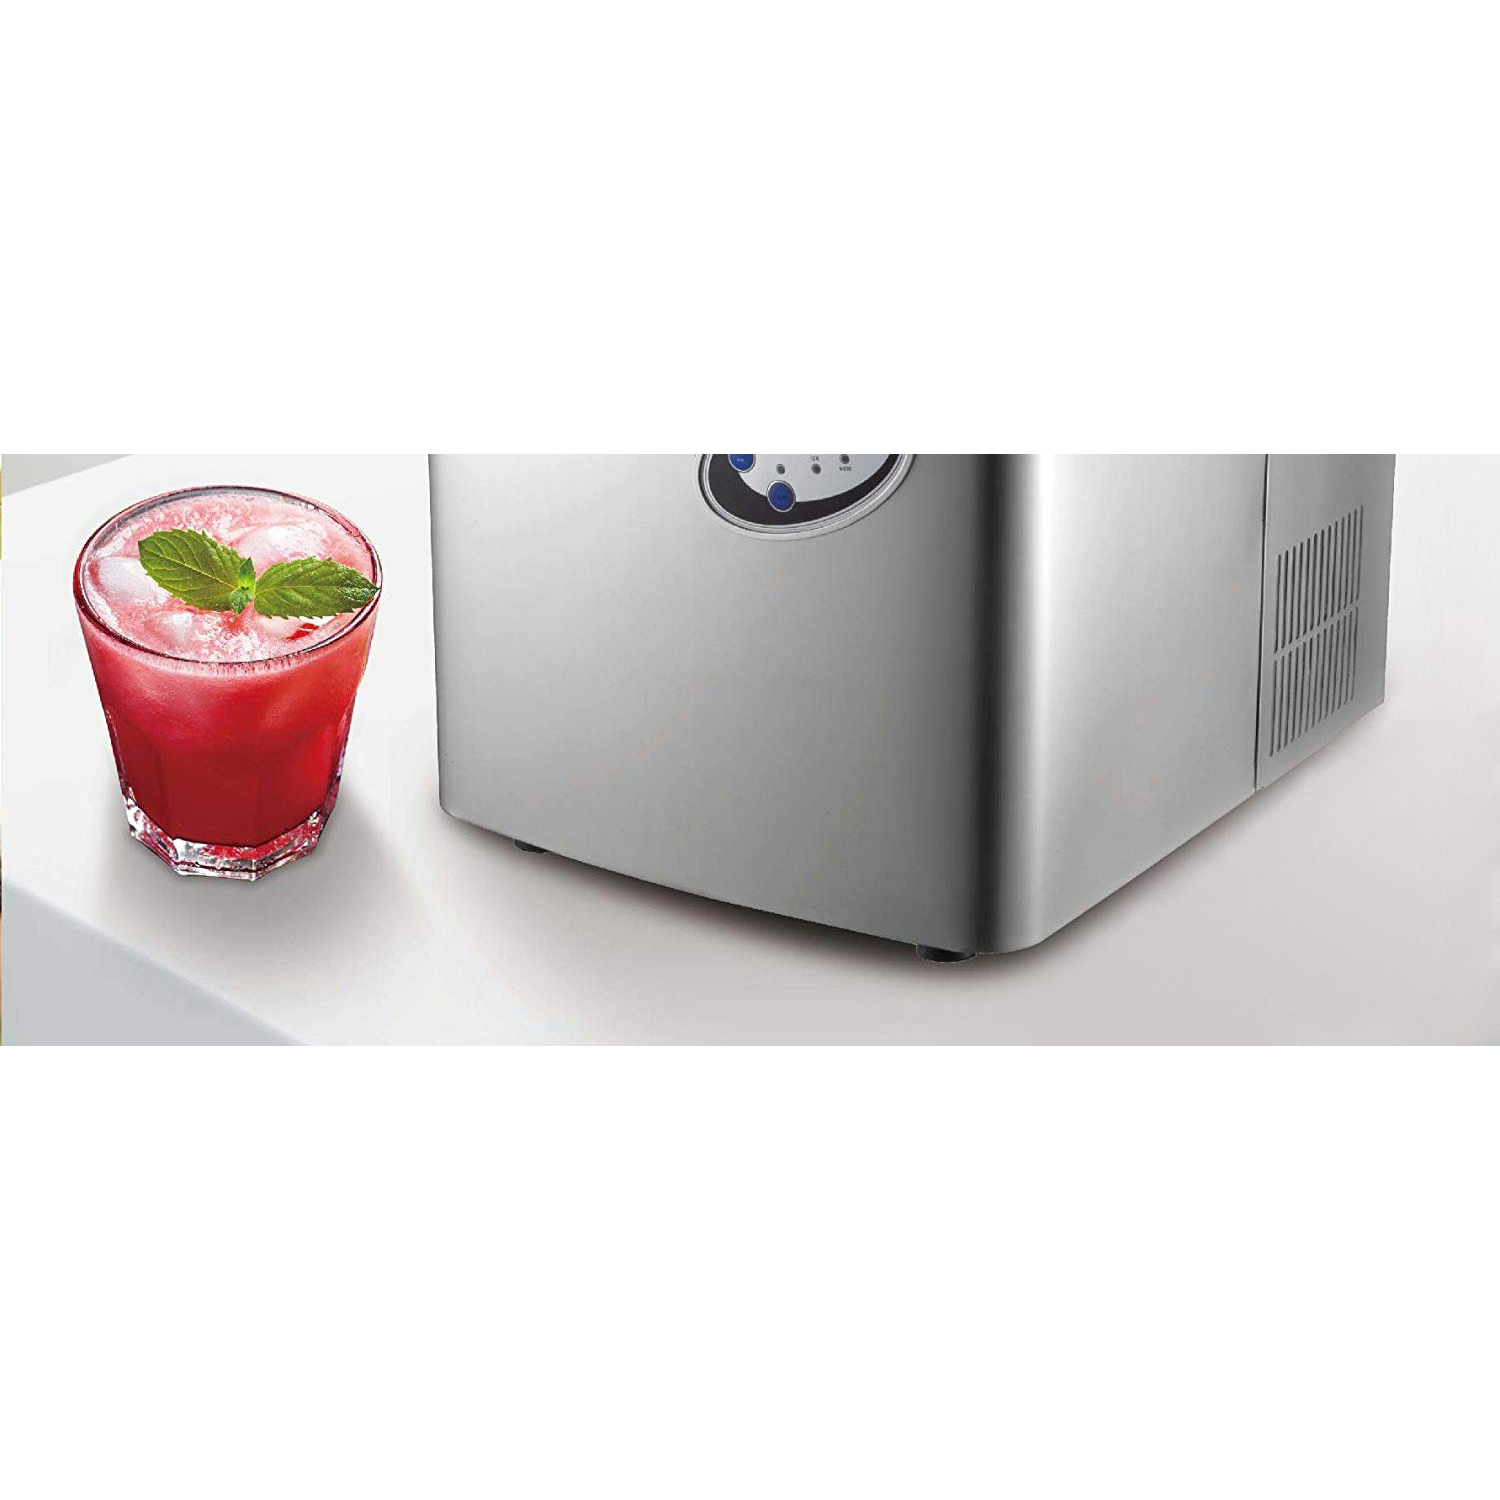 Frigidaire Extra Large Stainless Steel Ice Maker - EFIC115